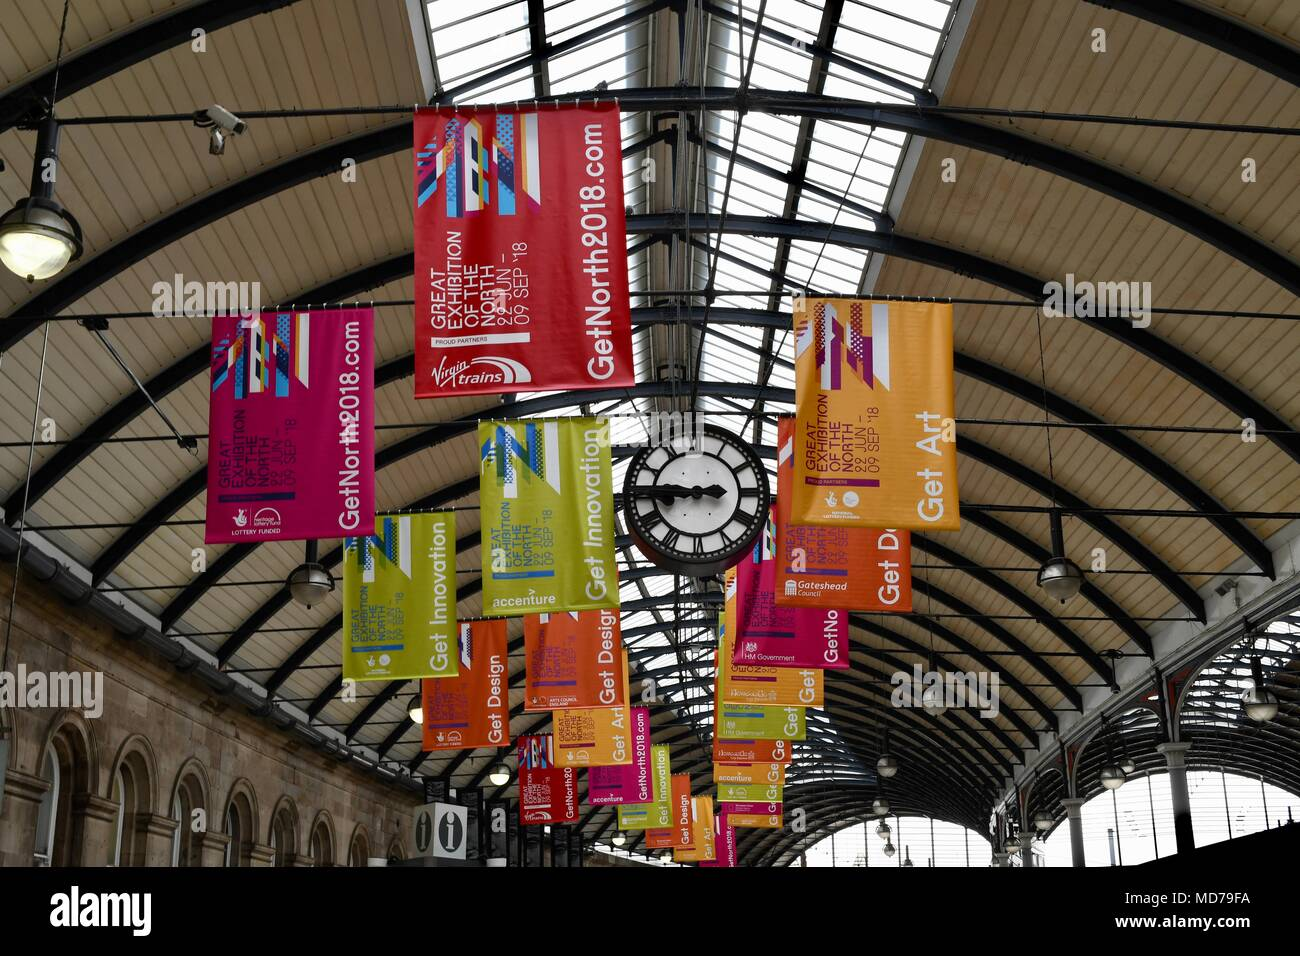 Banners at Newcastle Station announcing the Great Exhibition of the North - Stock Image